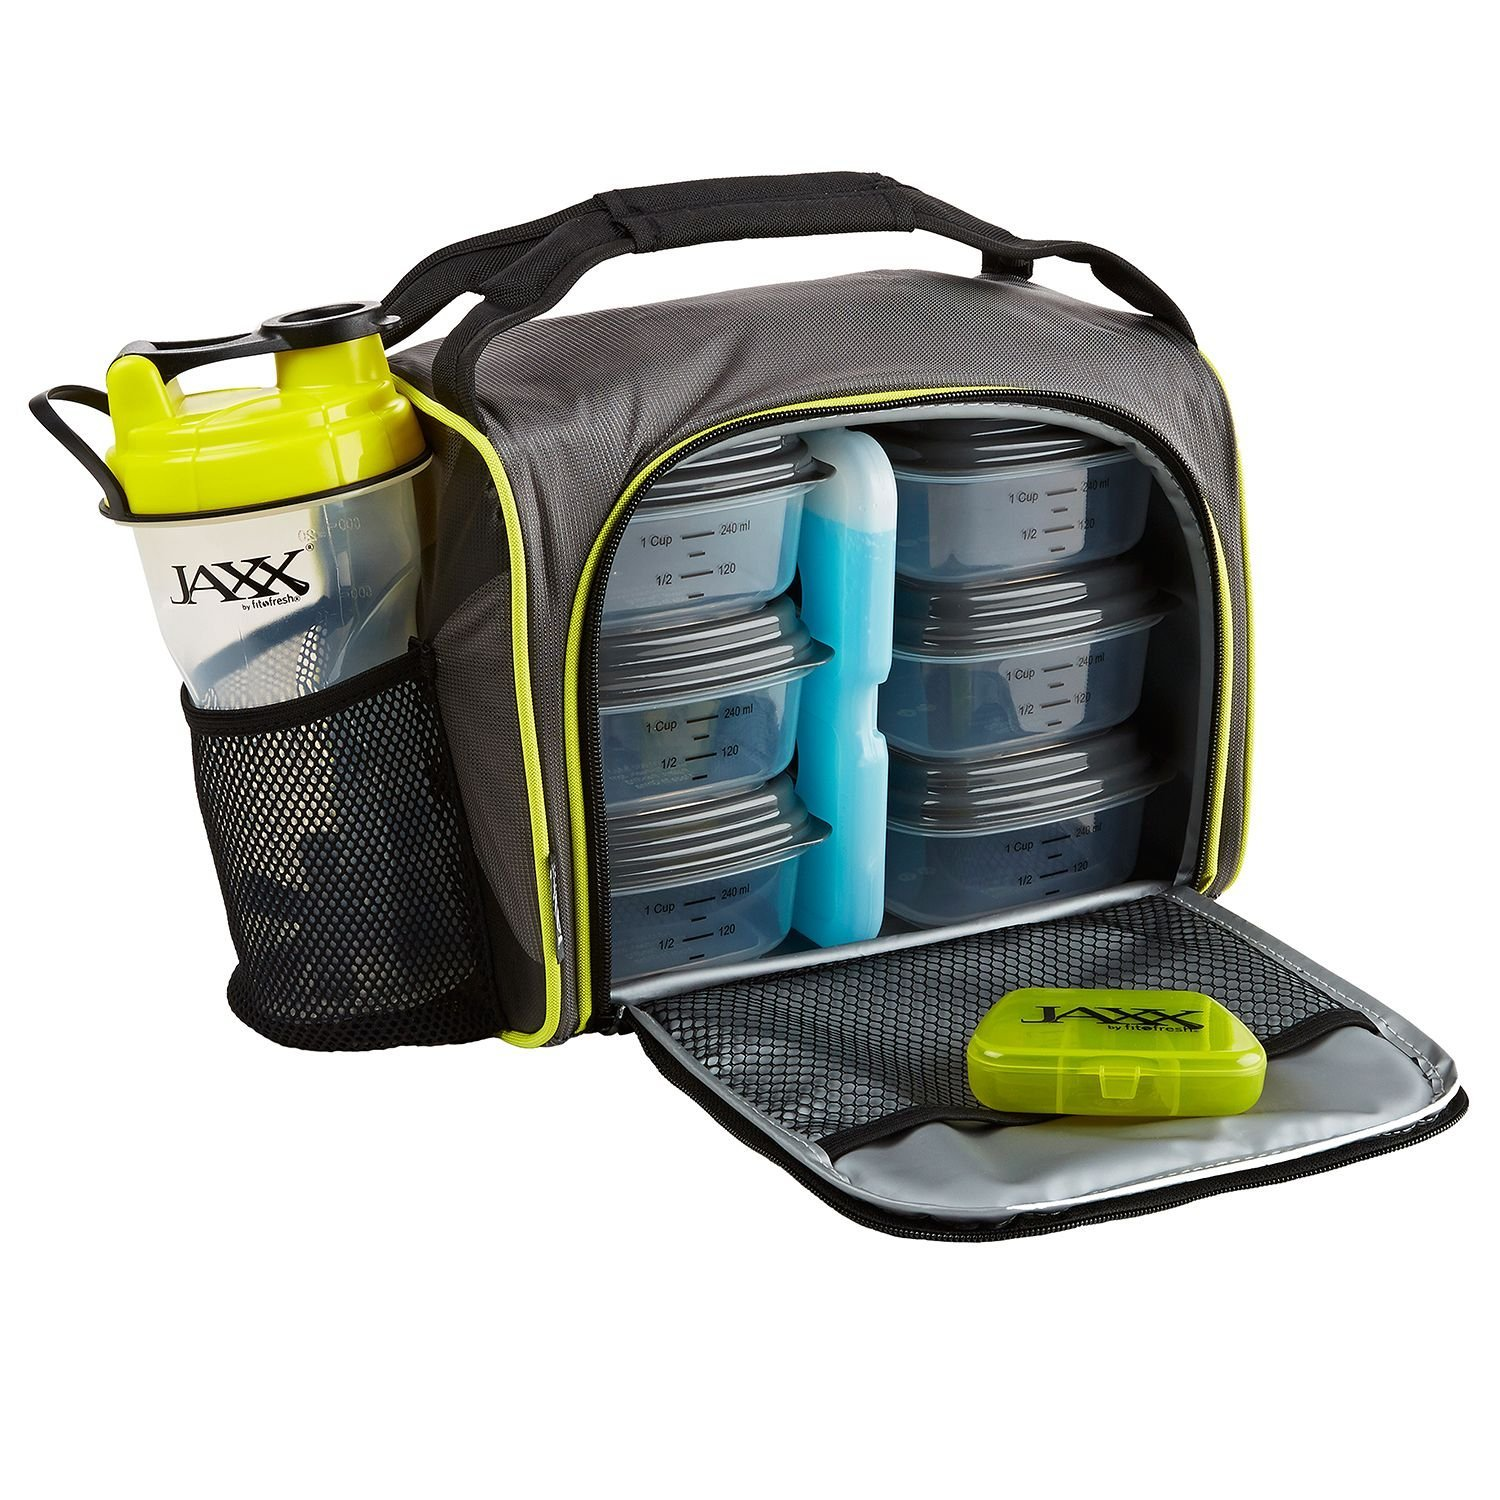 Jaxx FitPak with Portion Control Container Set, Reusable Ice Pack, and Shaker Cup (Black Yellow)